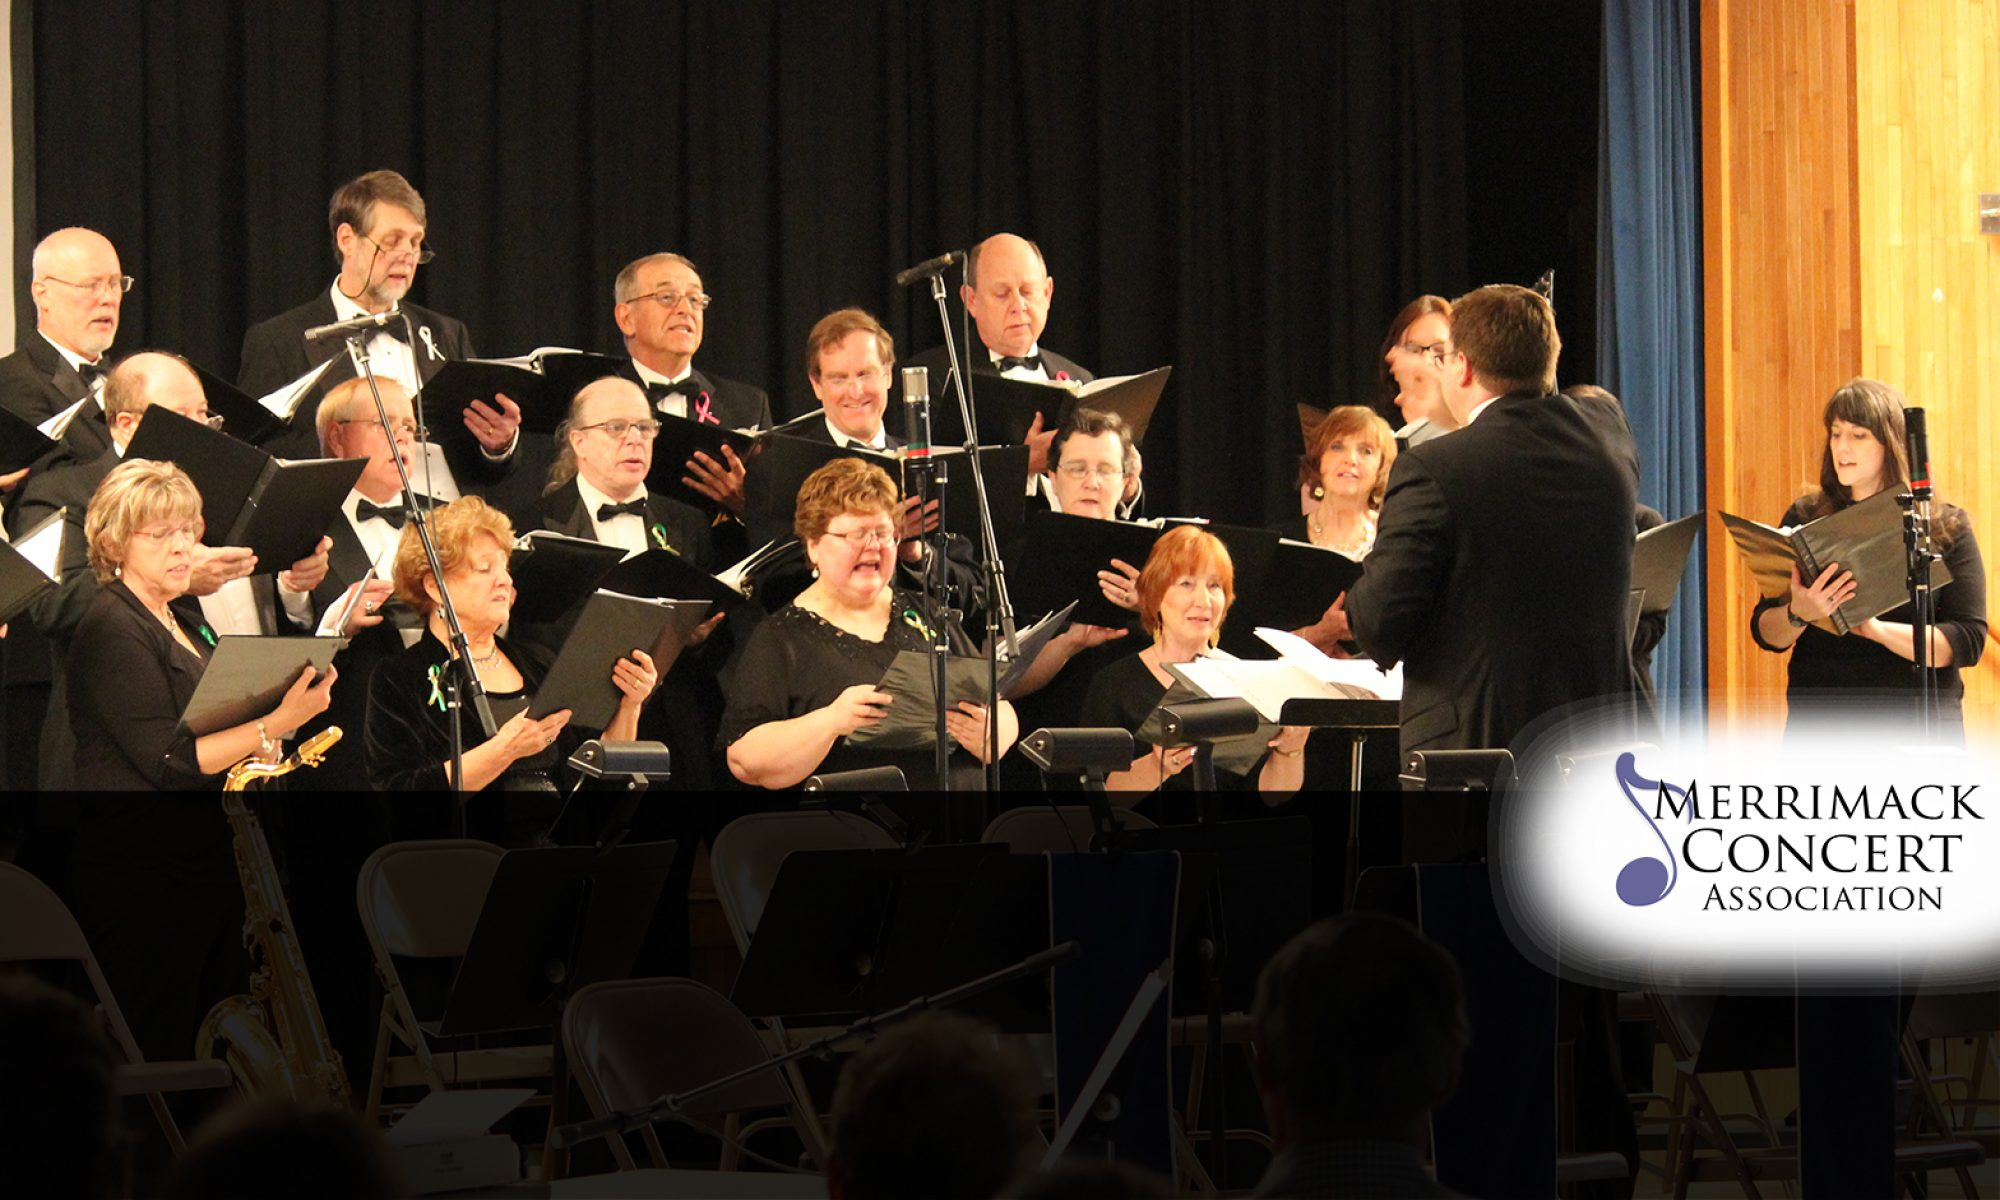 Merrimack Concert Association